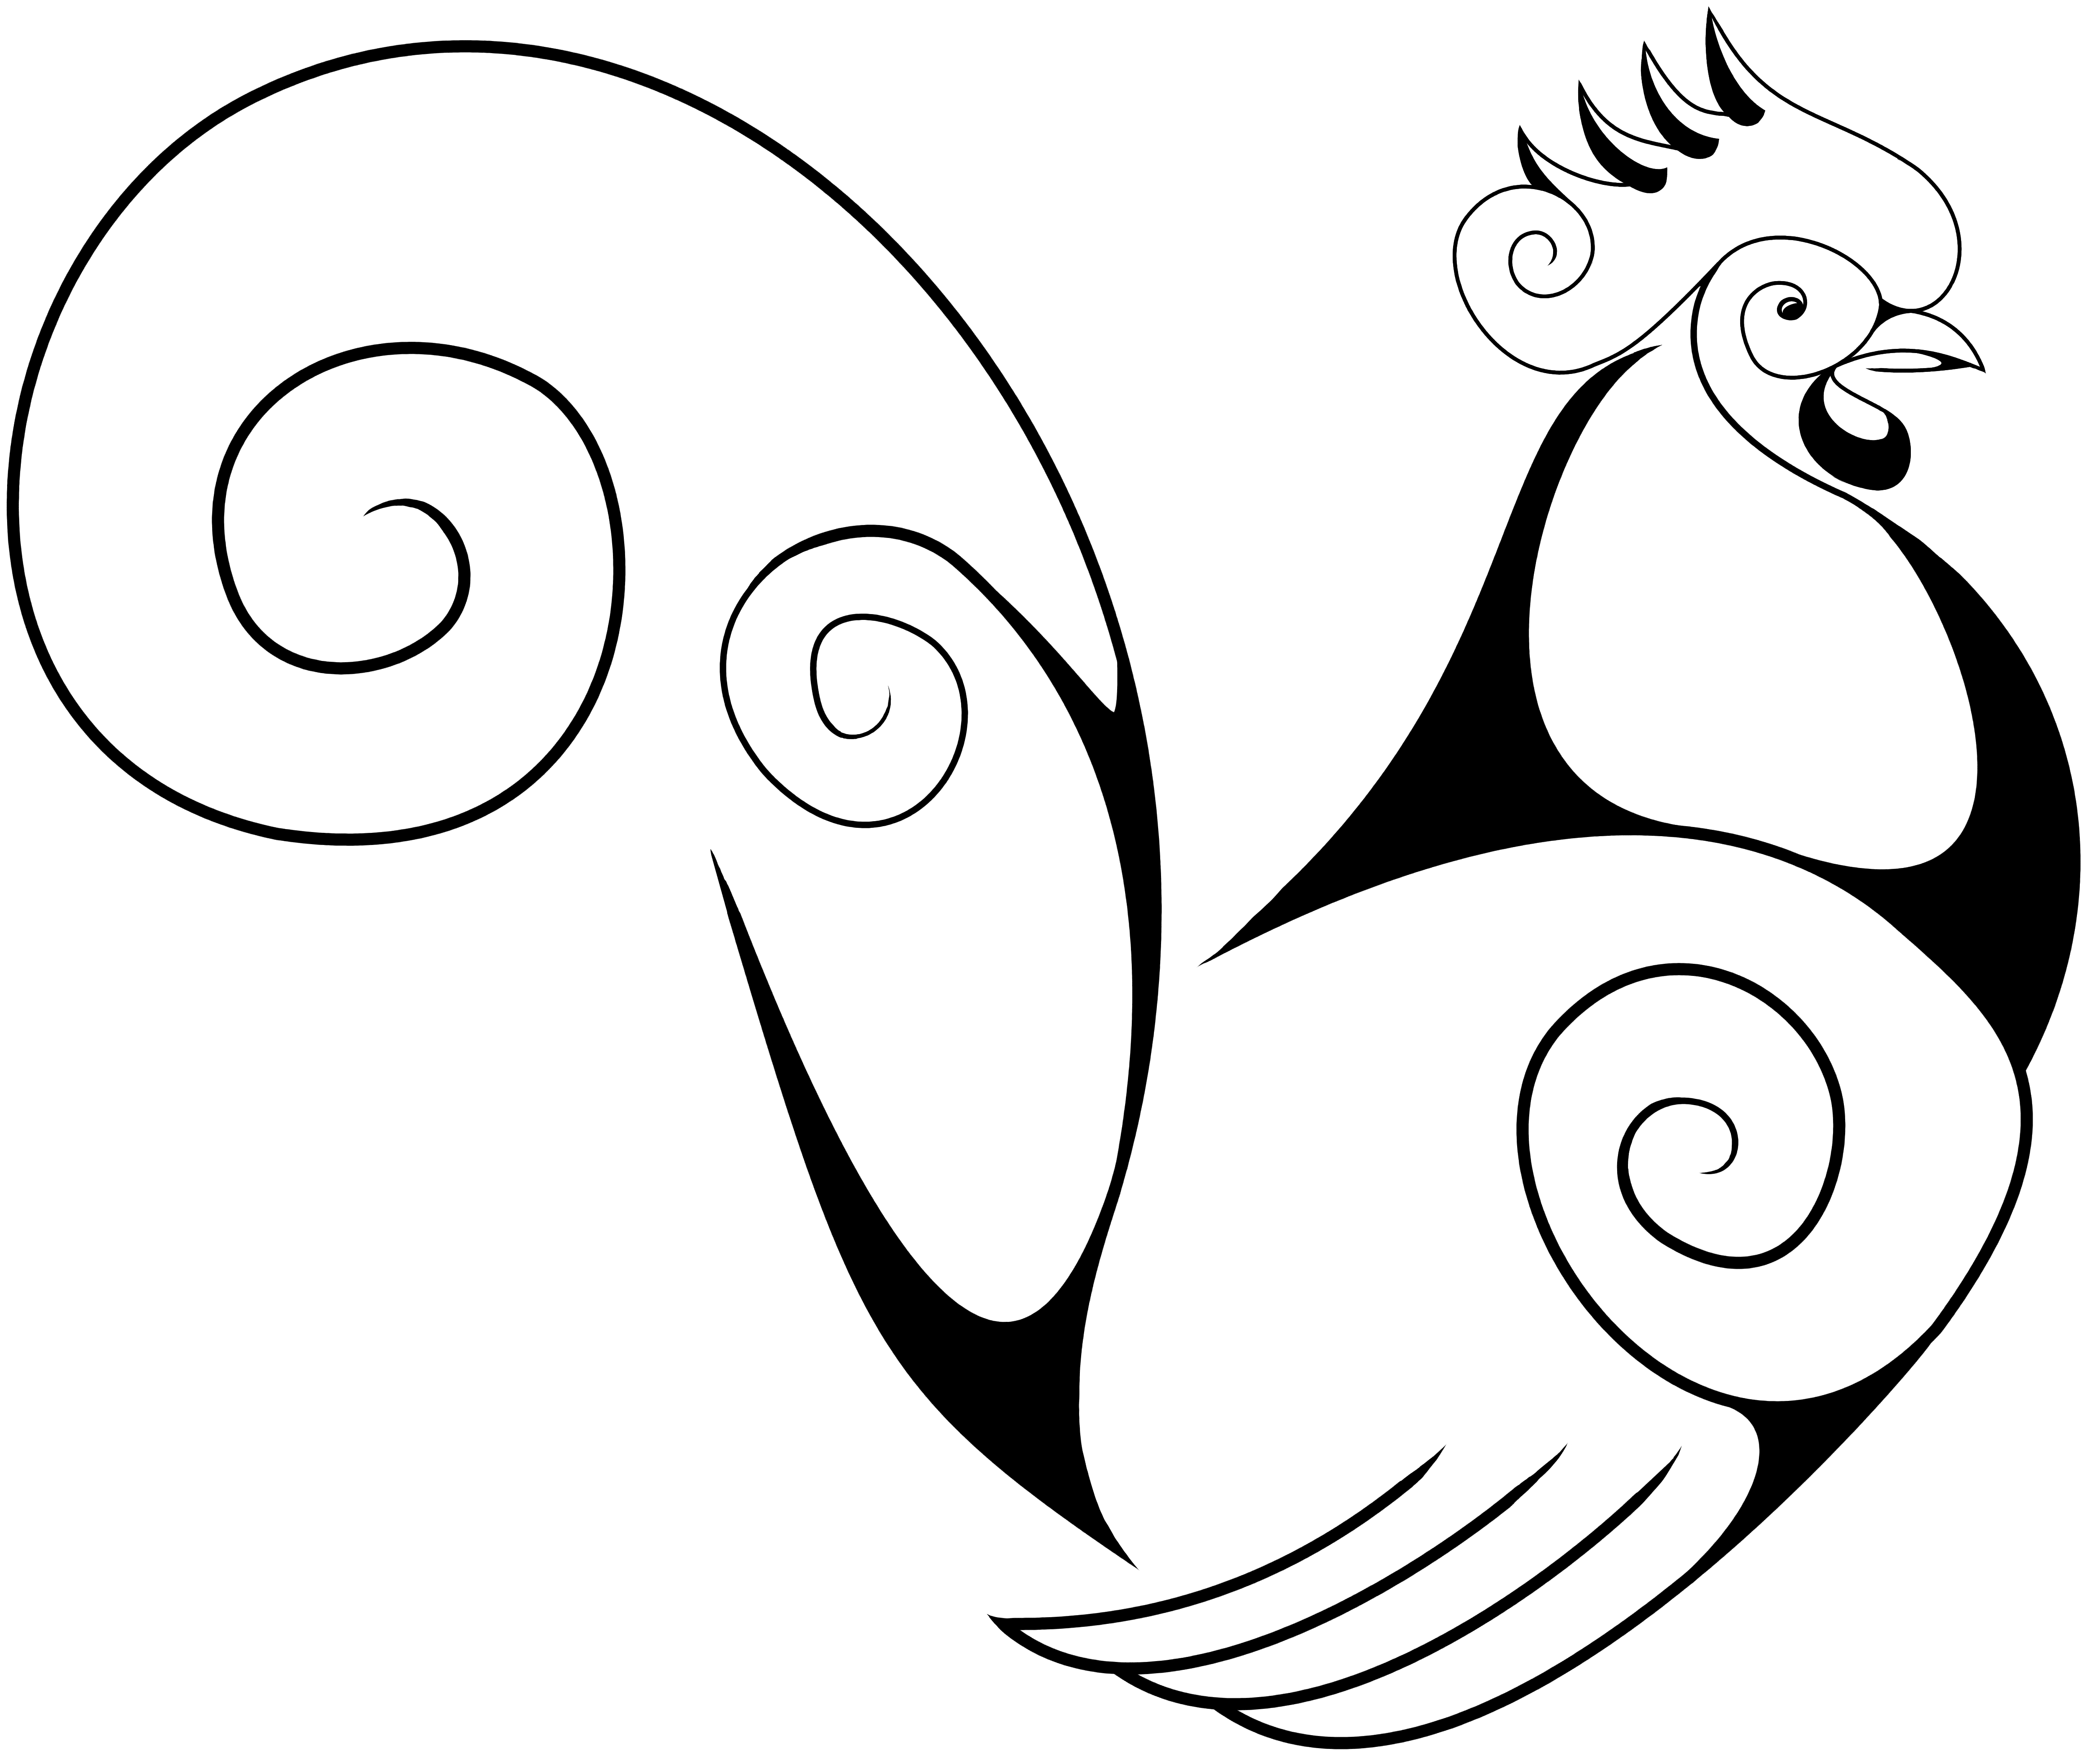 Drawn rooster Rooster Google Rooster A Swirly